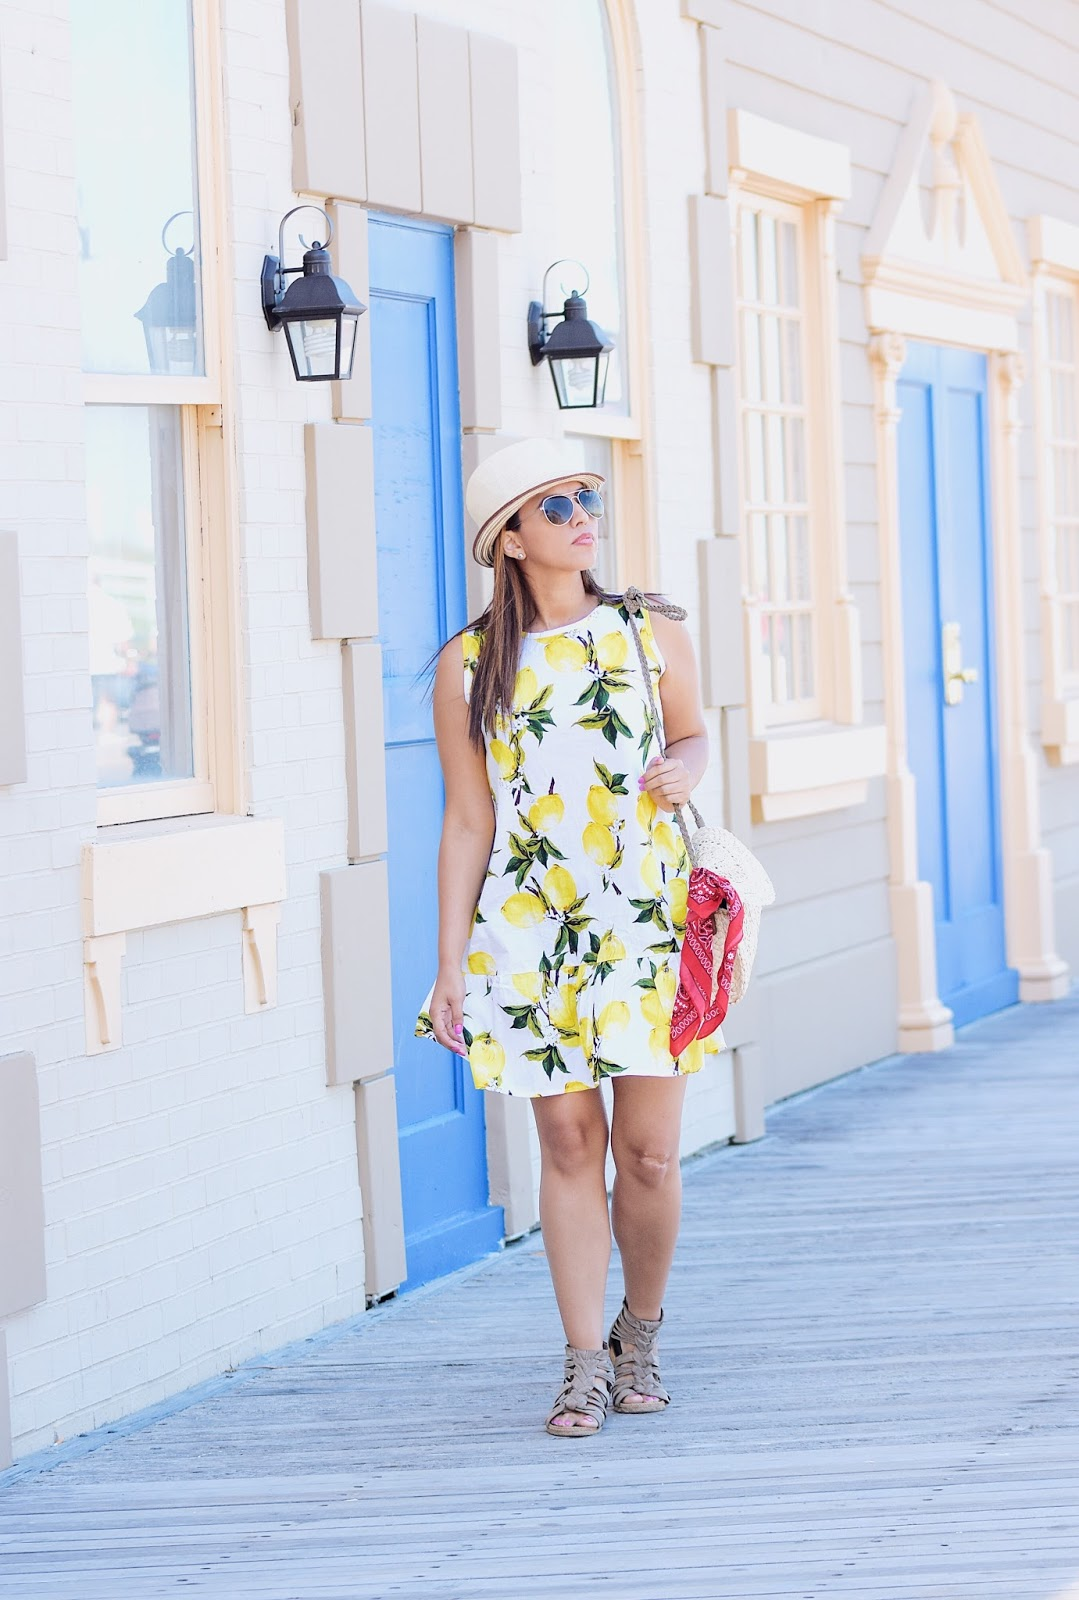 Lemon Dress by Mari Estilo - Wearing: Lemon Dress: Zaful Shoes: Kenneth Cole